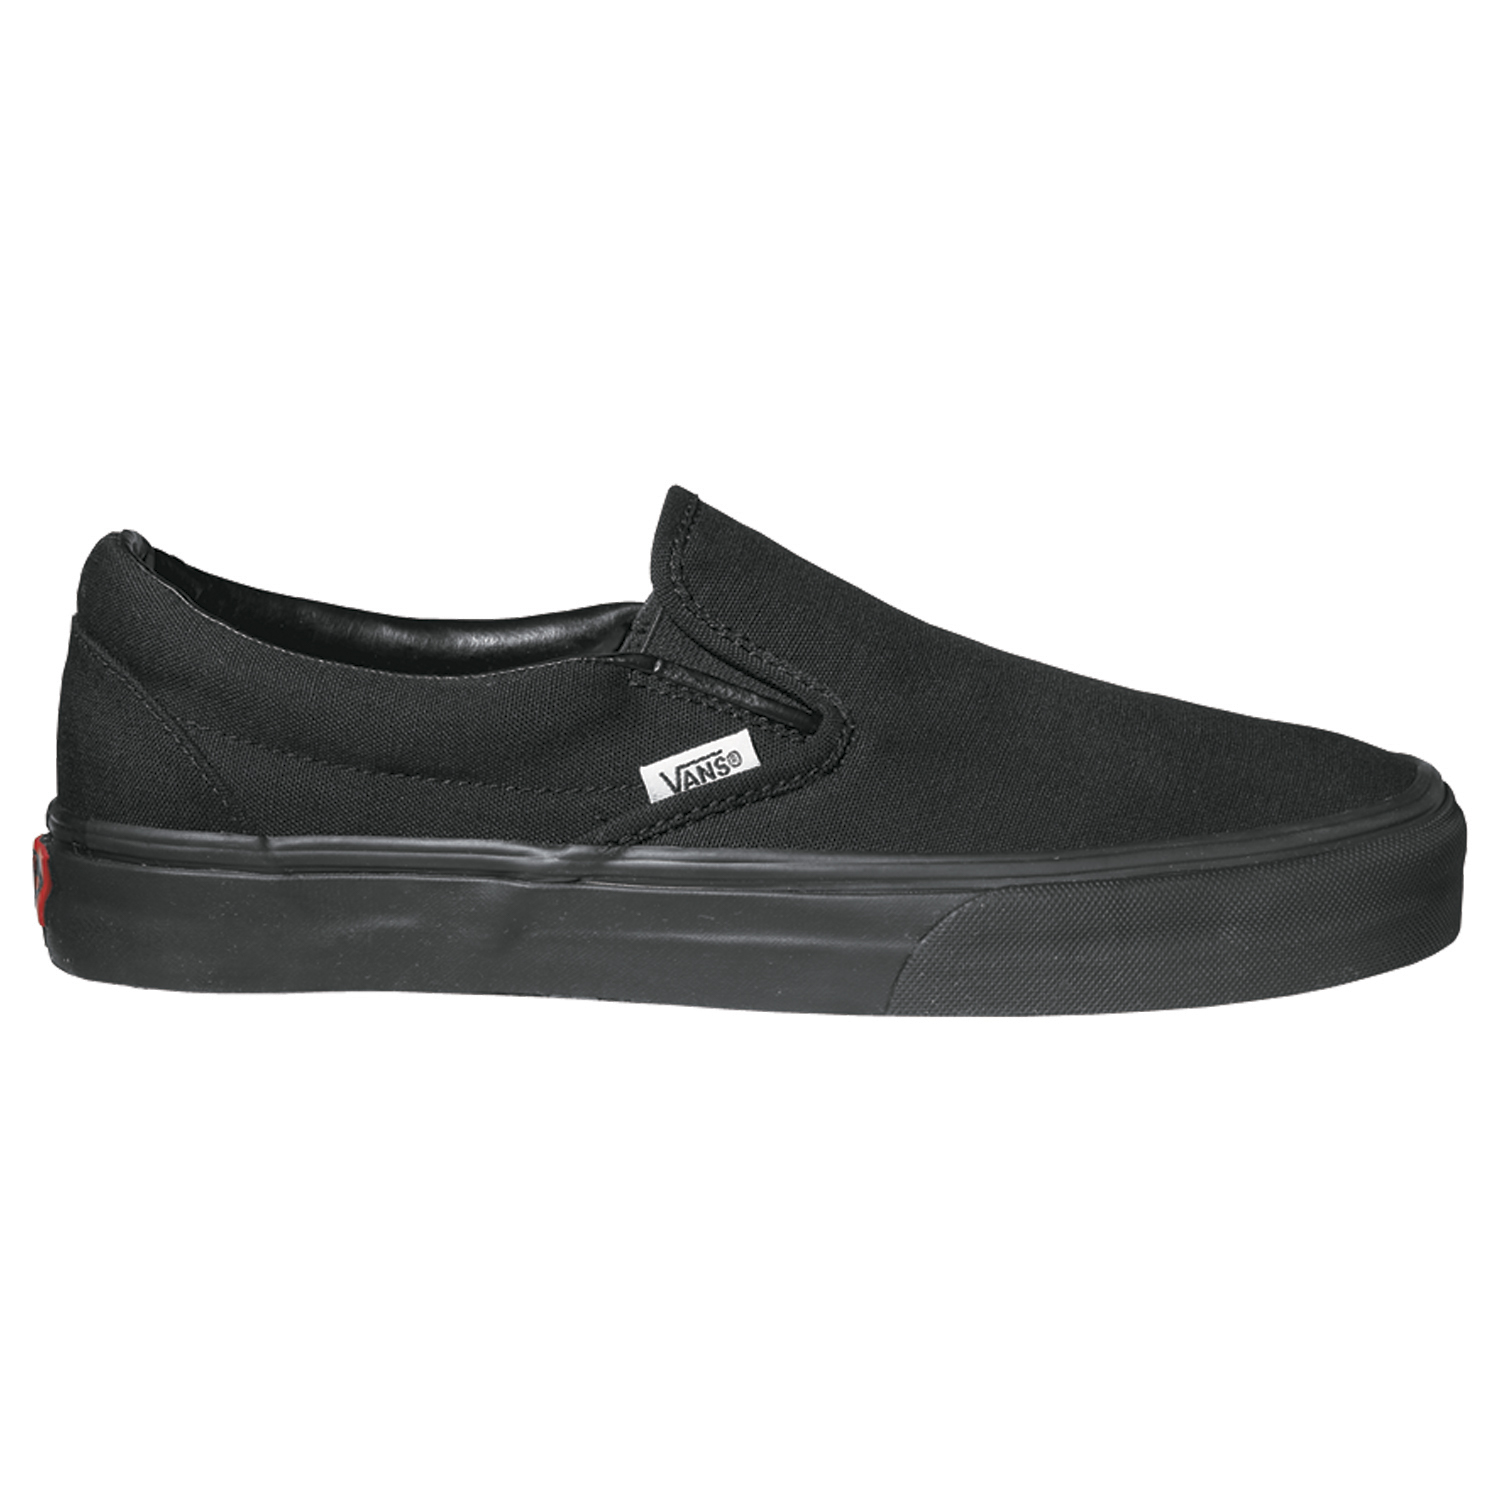 vans-classic-slip-on-black-black-99-90